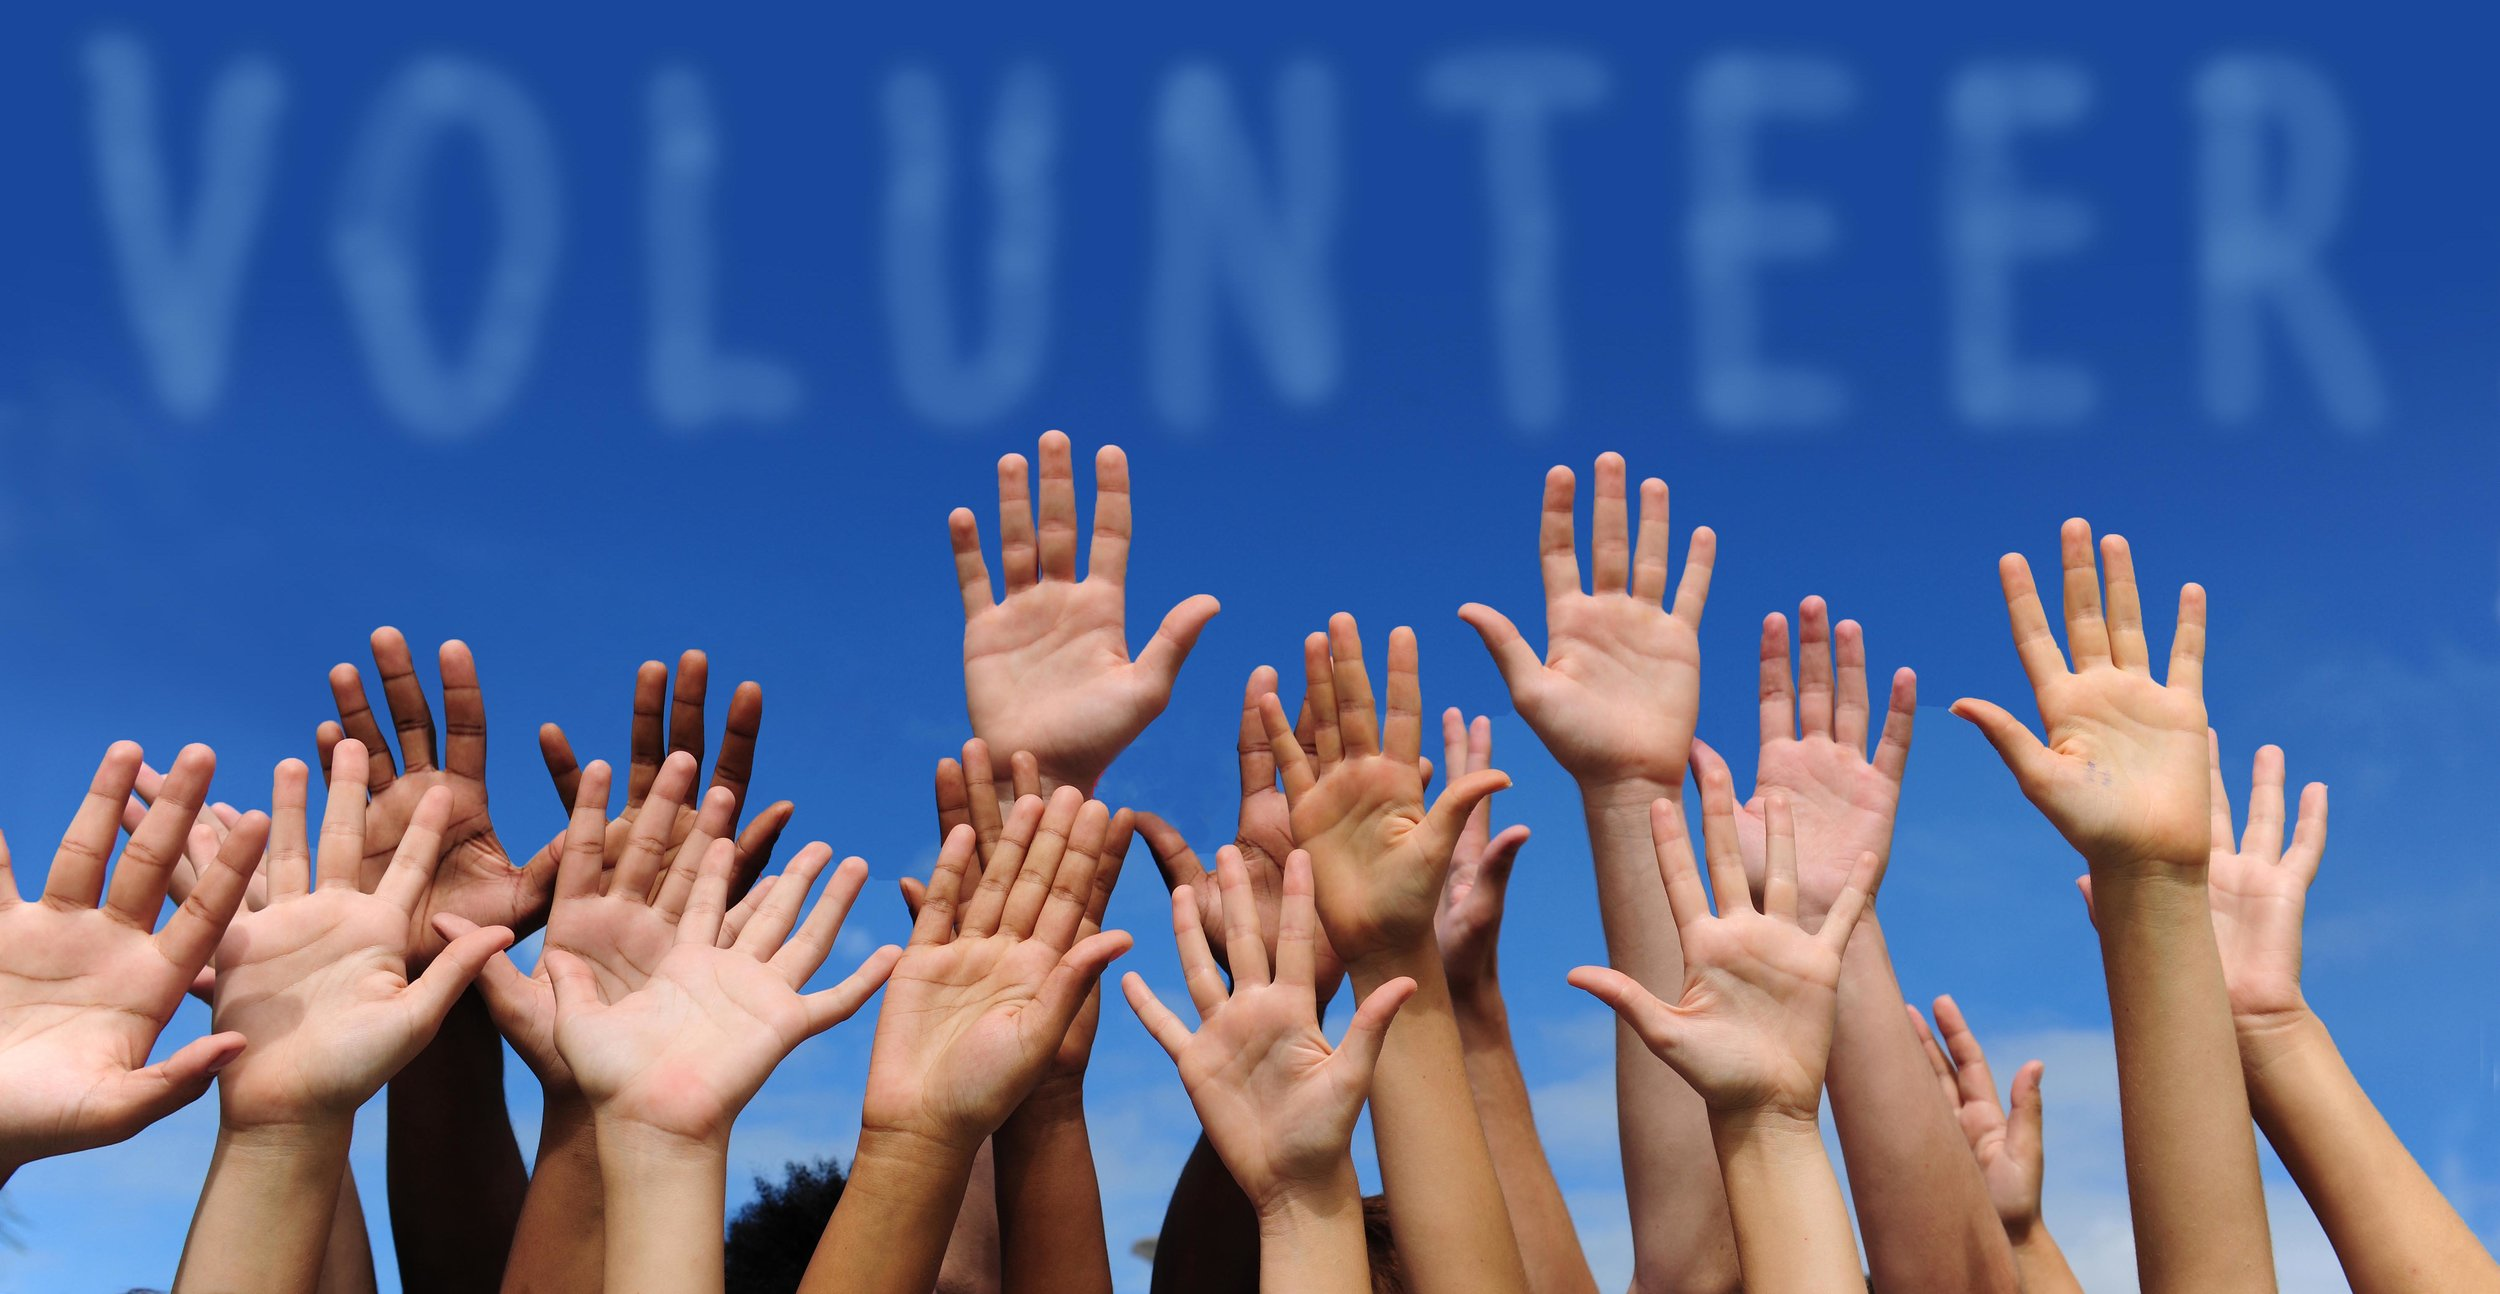 bigstock-volunteer-group-raising-hands--19543958-web.jpg